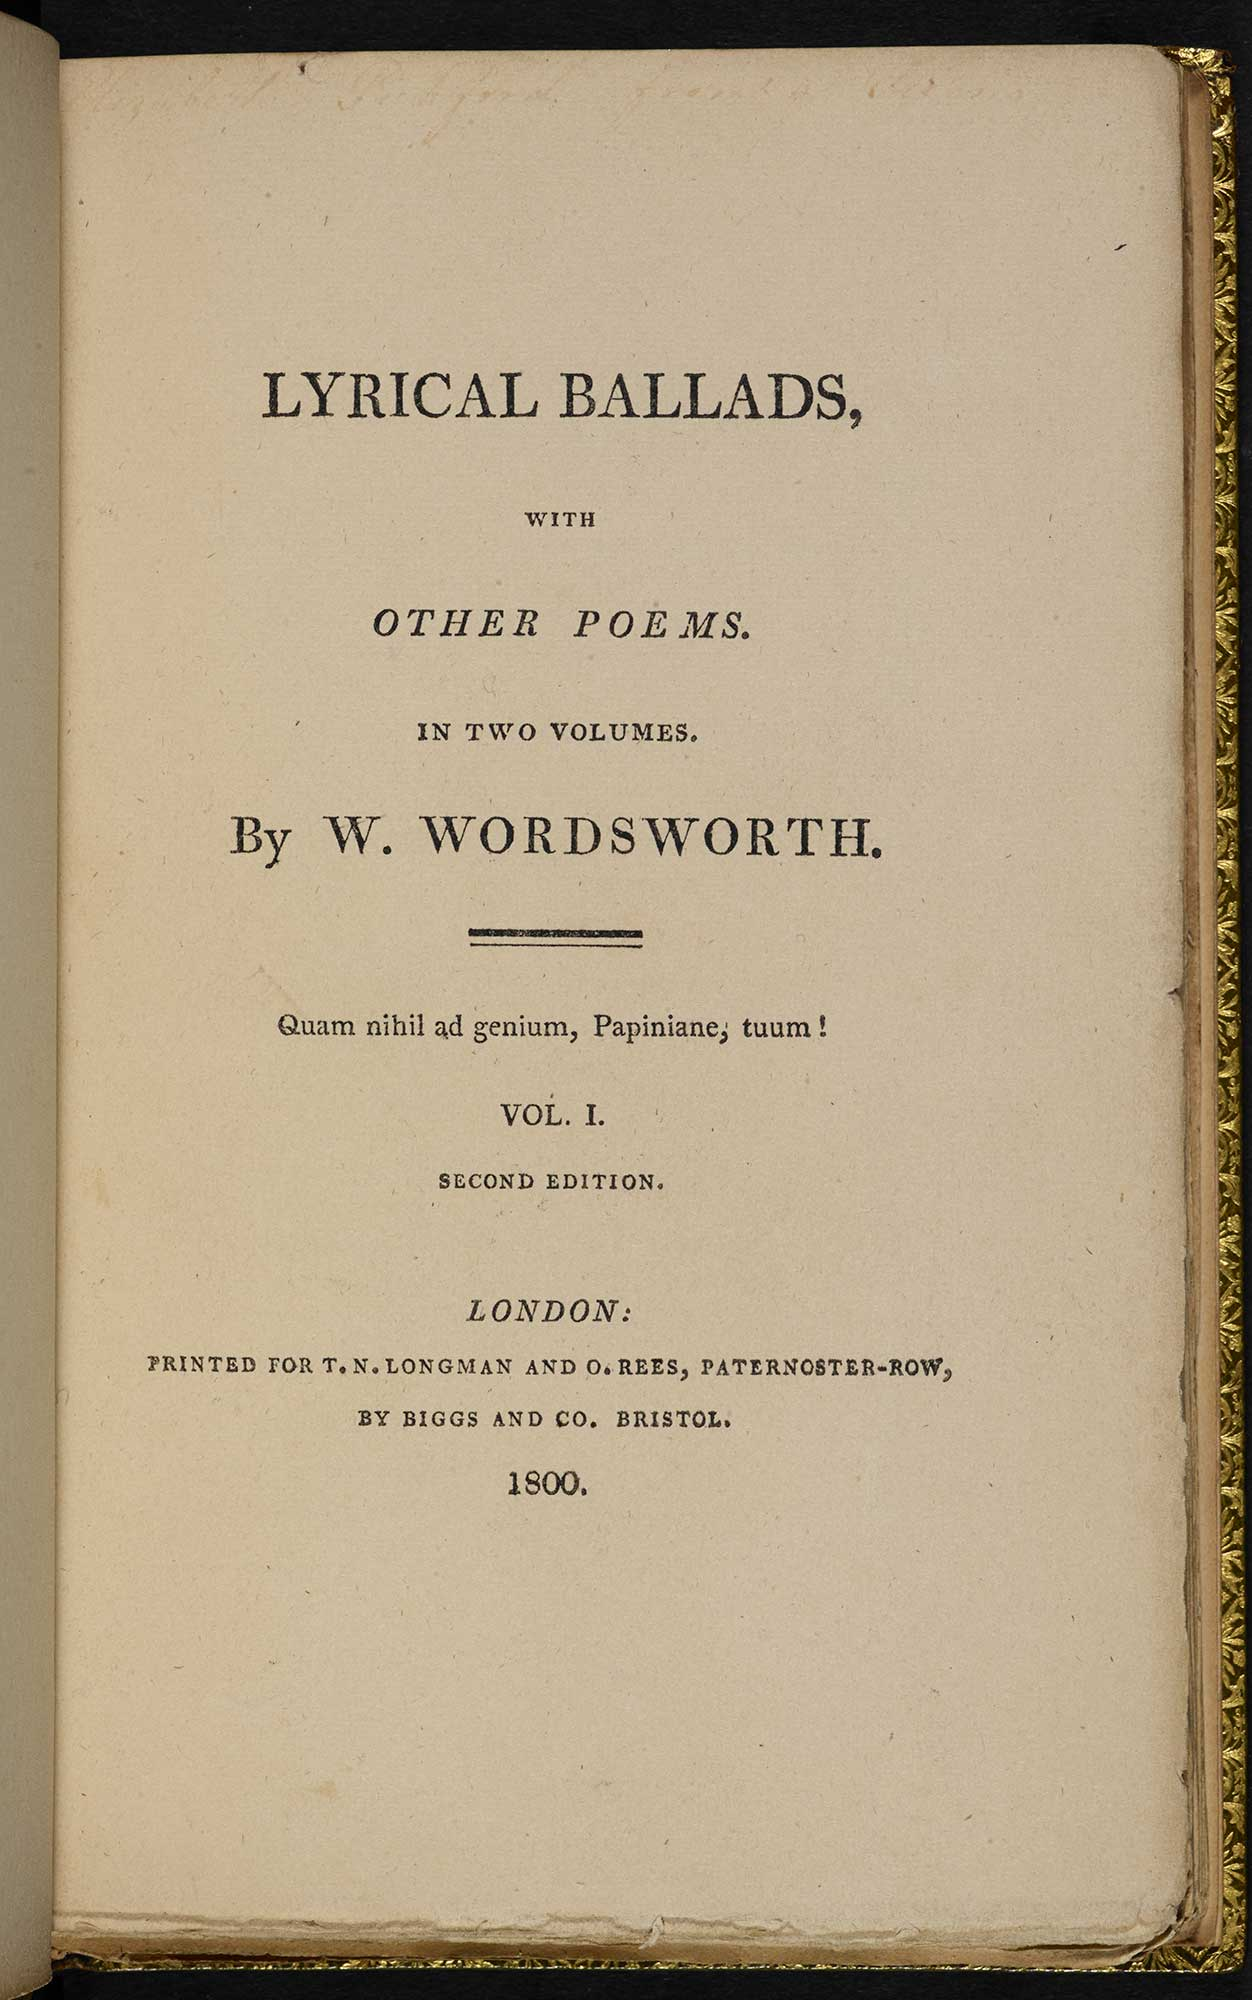 Lyrical Ballads: 1800 edition - The British Library